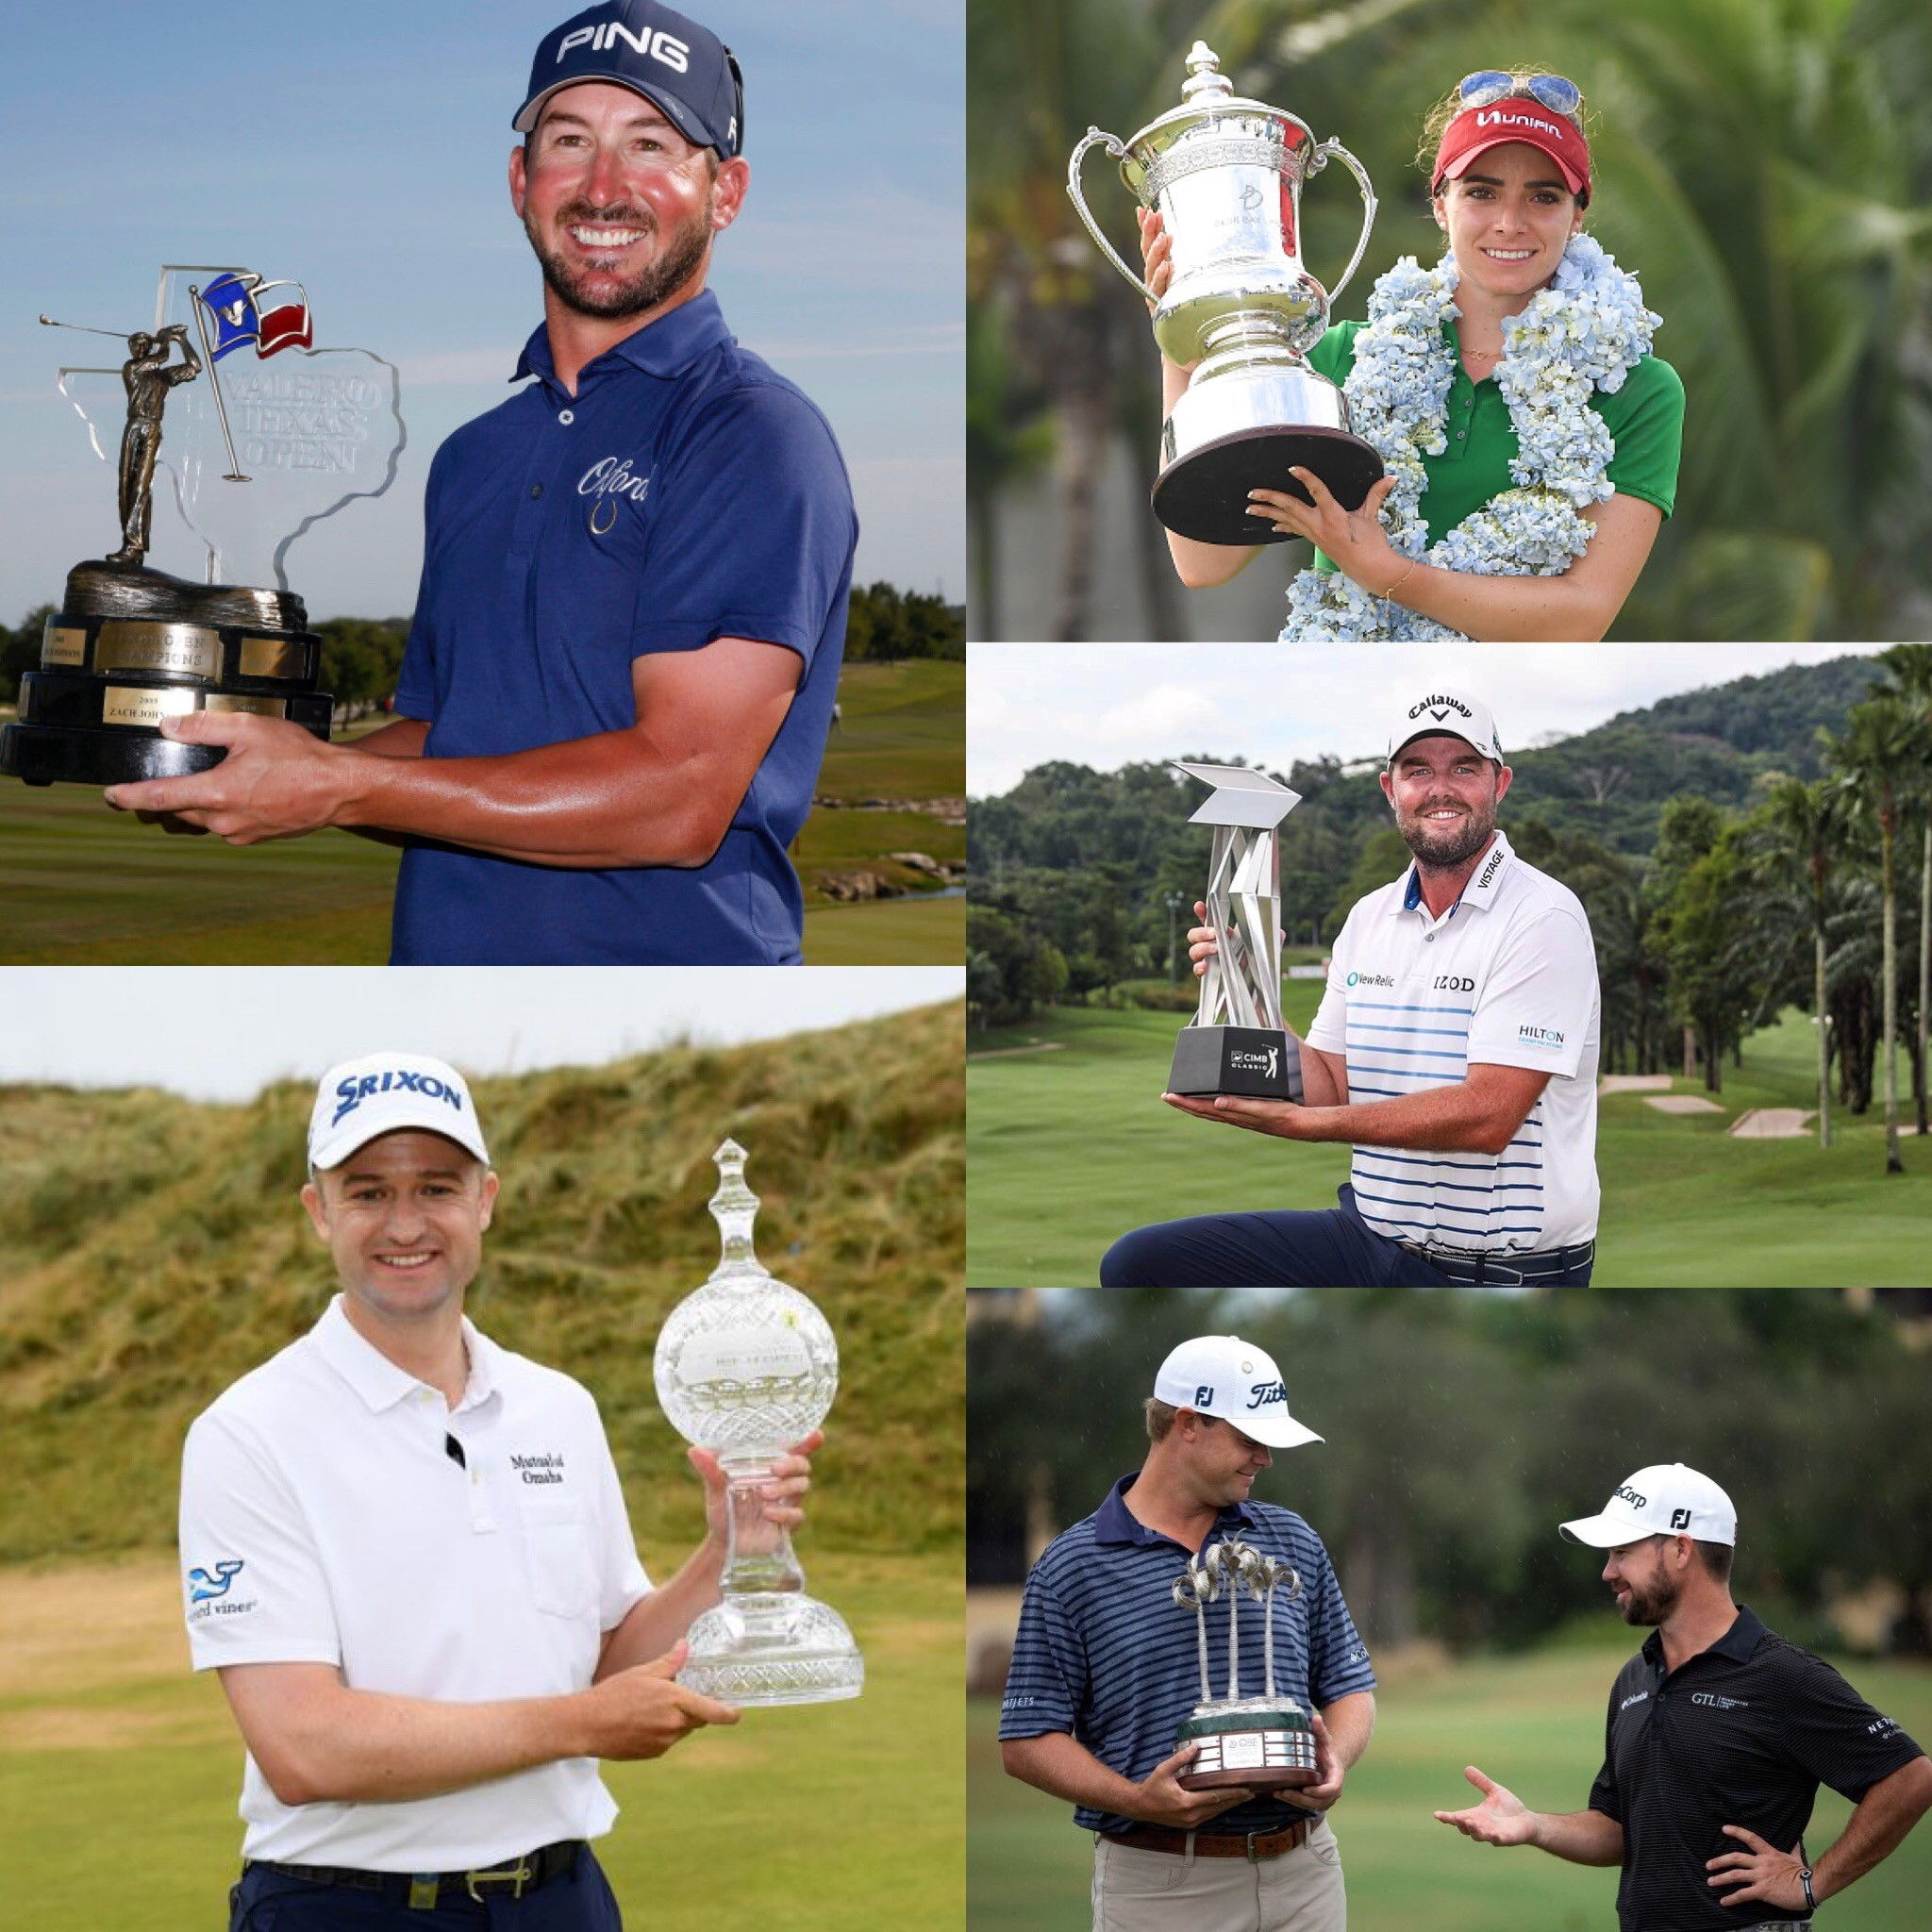 Looking Back on 2018 - The Secret Golf Victories (Part 2)